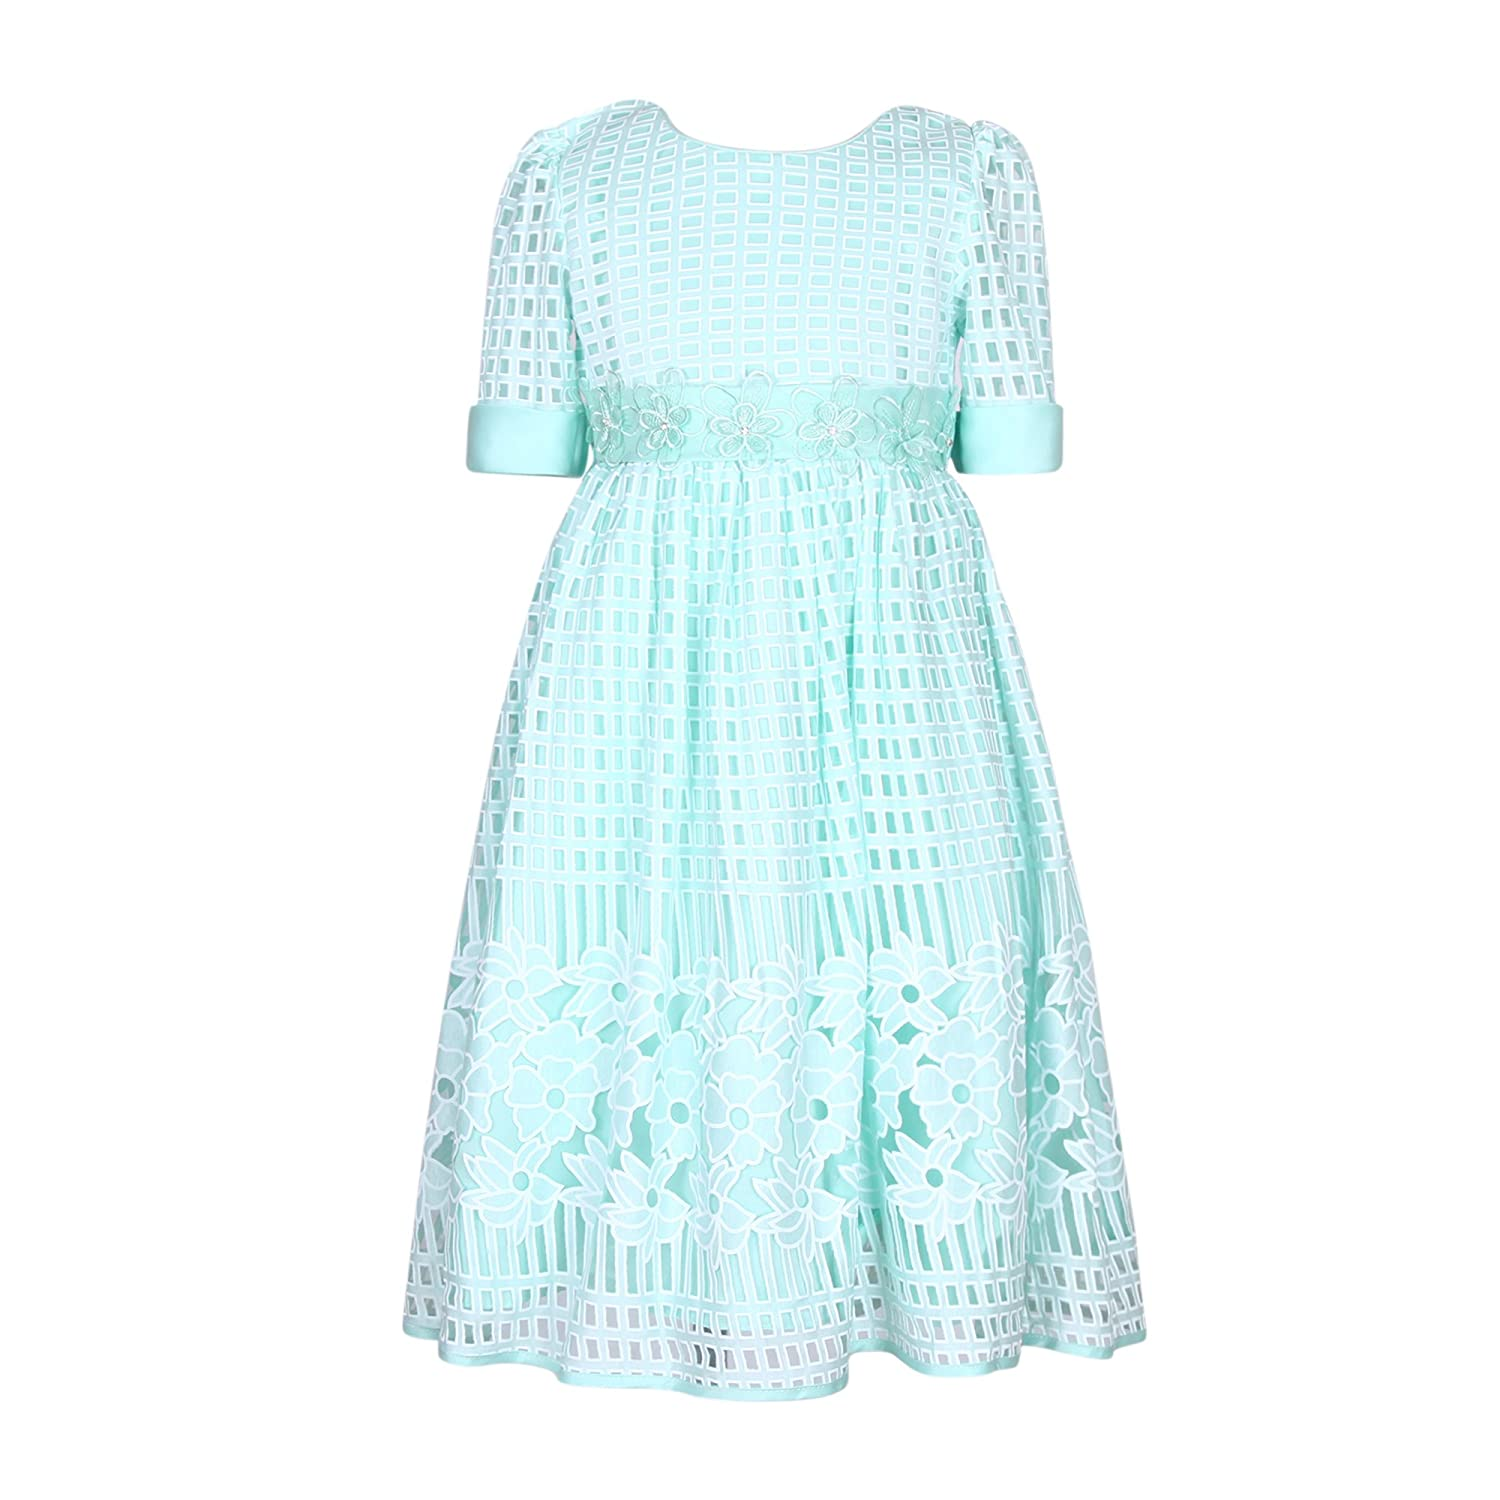 Richie House Girls' Princess Solid Dress with Belt Size 3-10Y RH2603